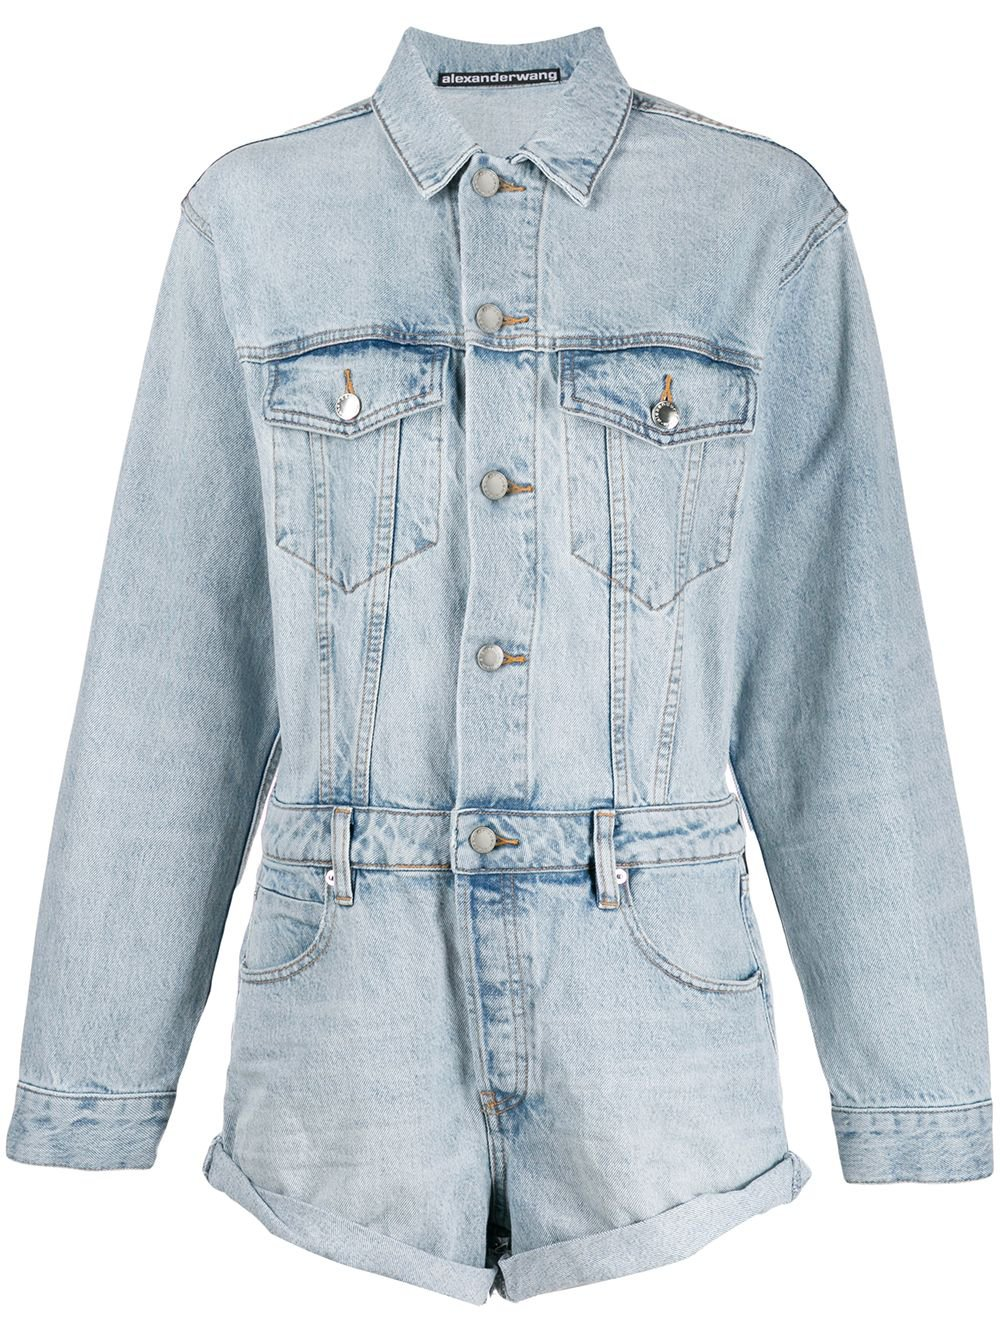 Alexander Wang Denim Playsuit - Farfetch